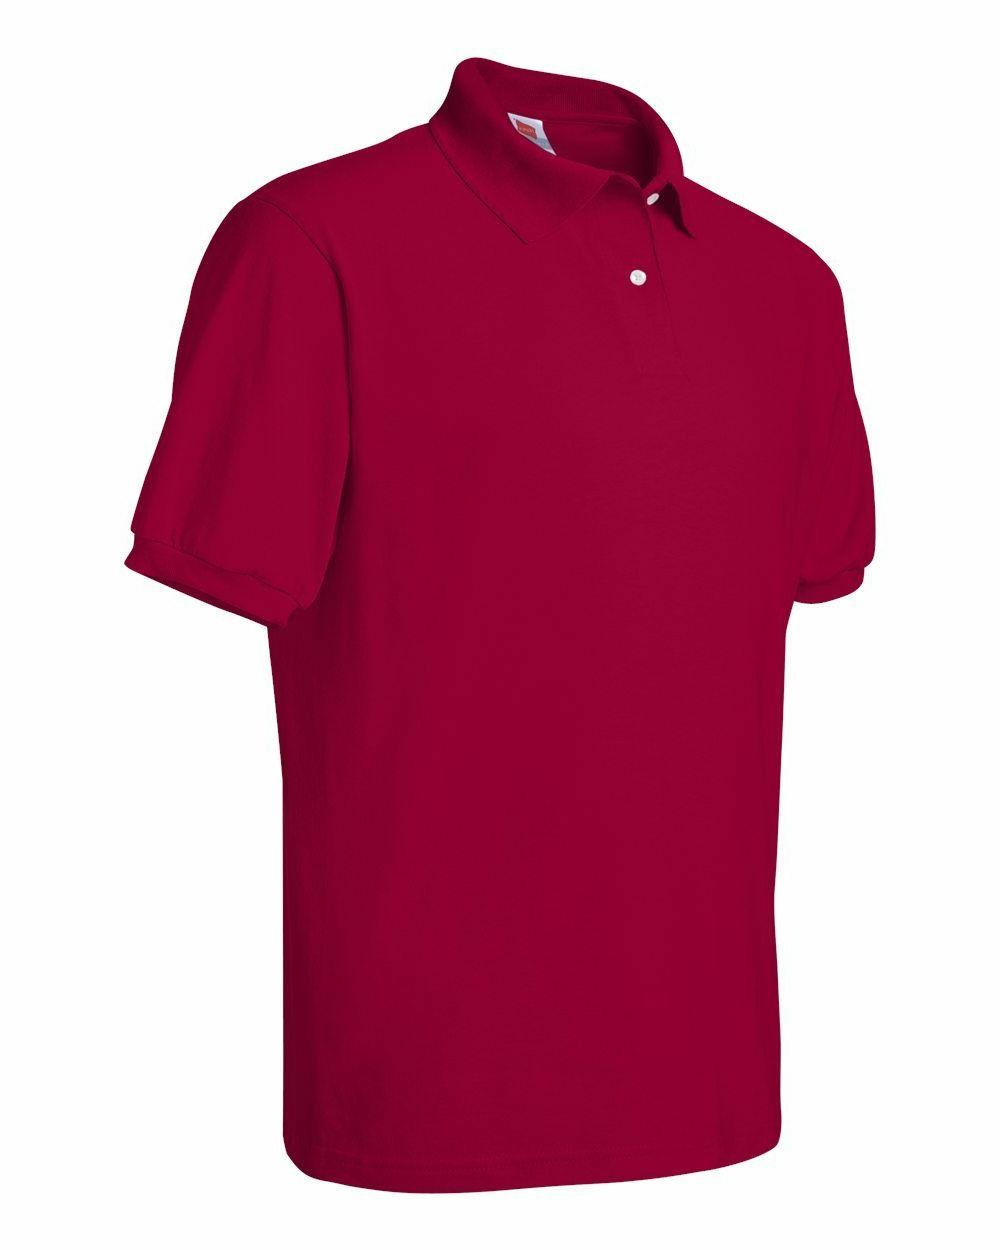 Hanes Tee Jersey Sport Mens Polo shirt from S-6XL